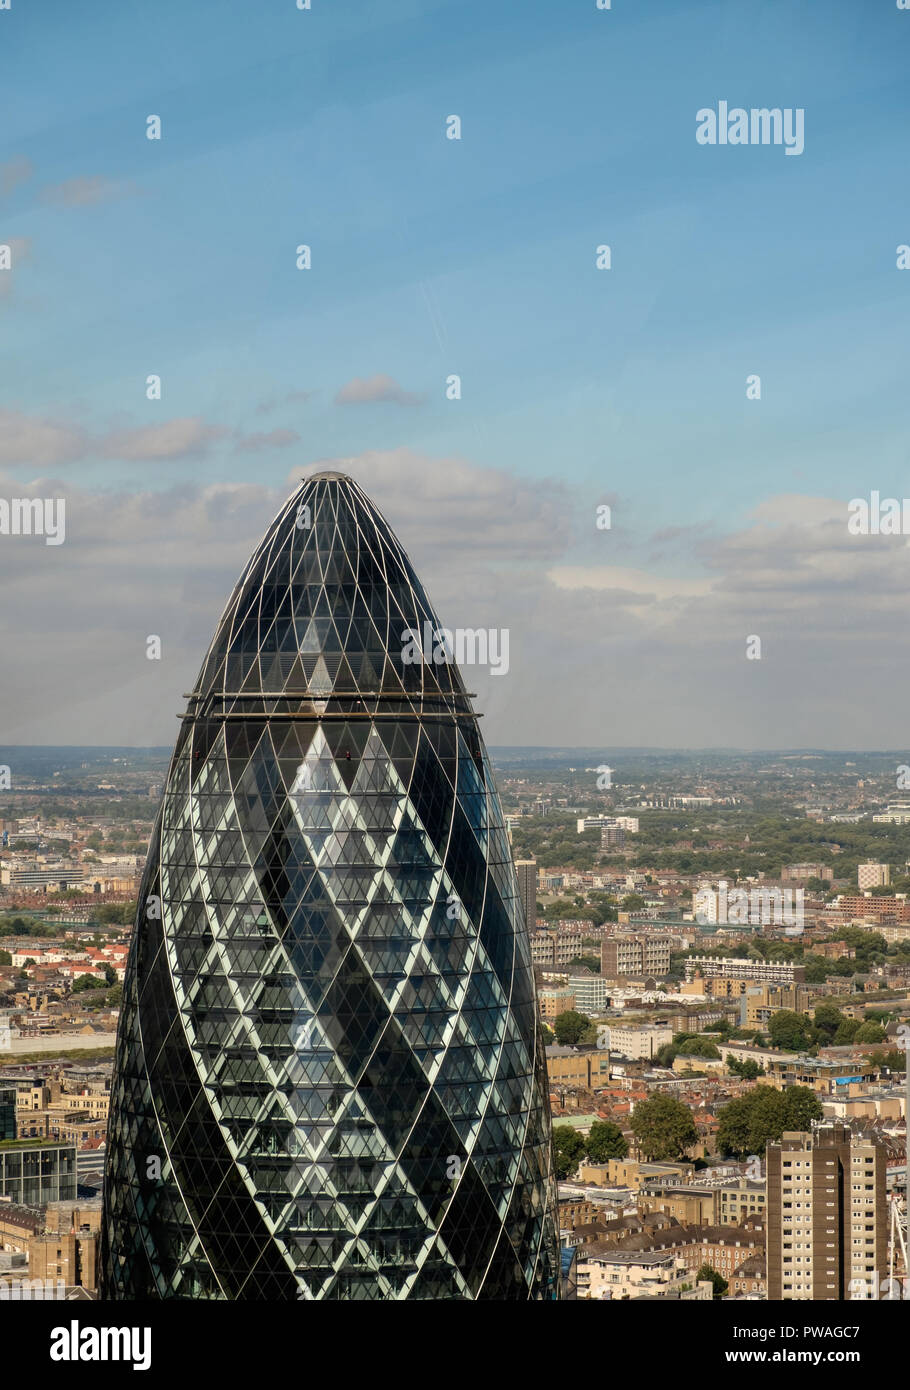 The Gherkin or 30 St Mary Axe is a commercial skyscraper in London's primary financial district, the City of London. It was completed in December 2003 - Stock Image